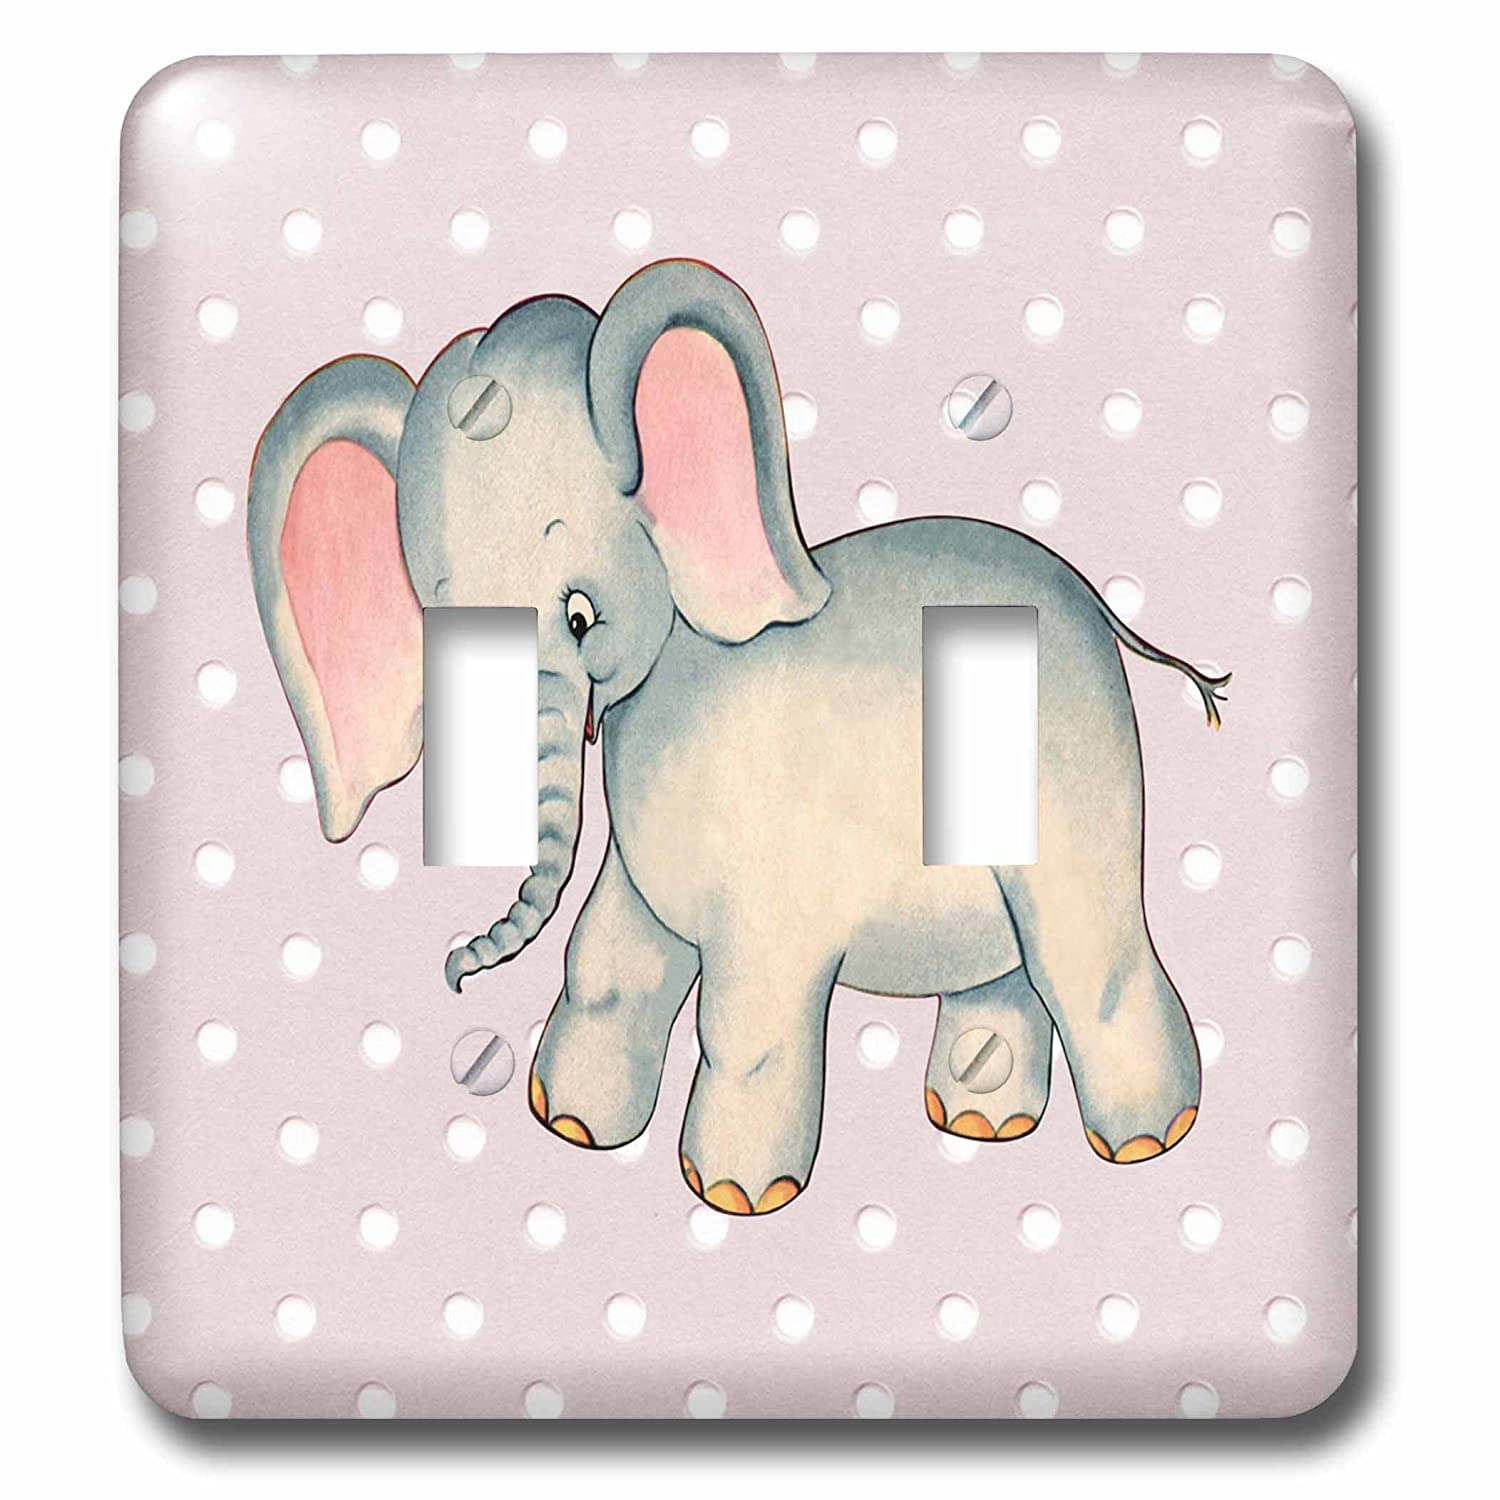 3D Rose LSP/_237077/_2 Image of Baby Retro Elephant On Pink Dots Double Toggle Switch